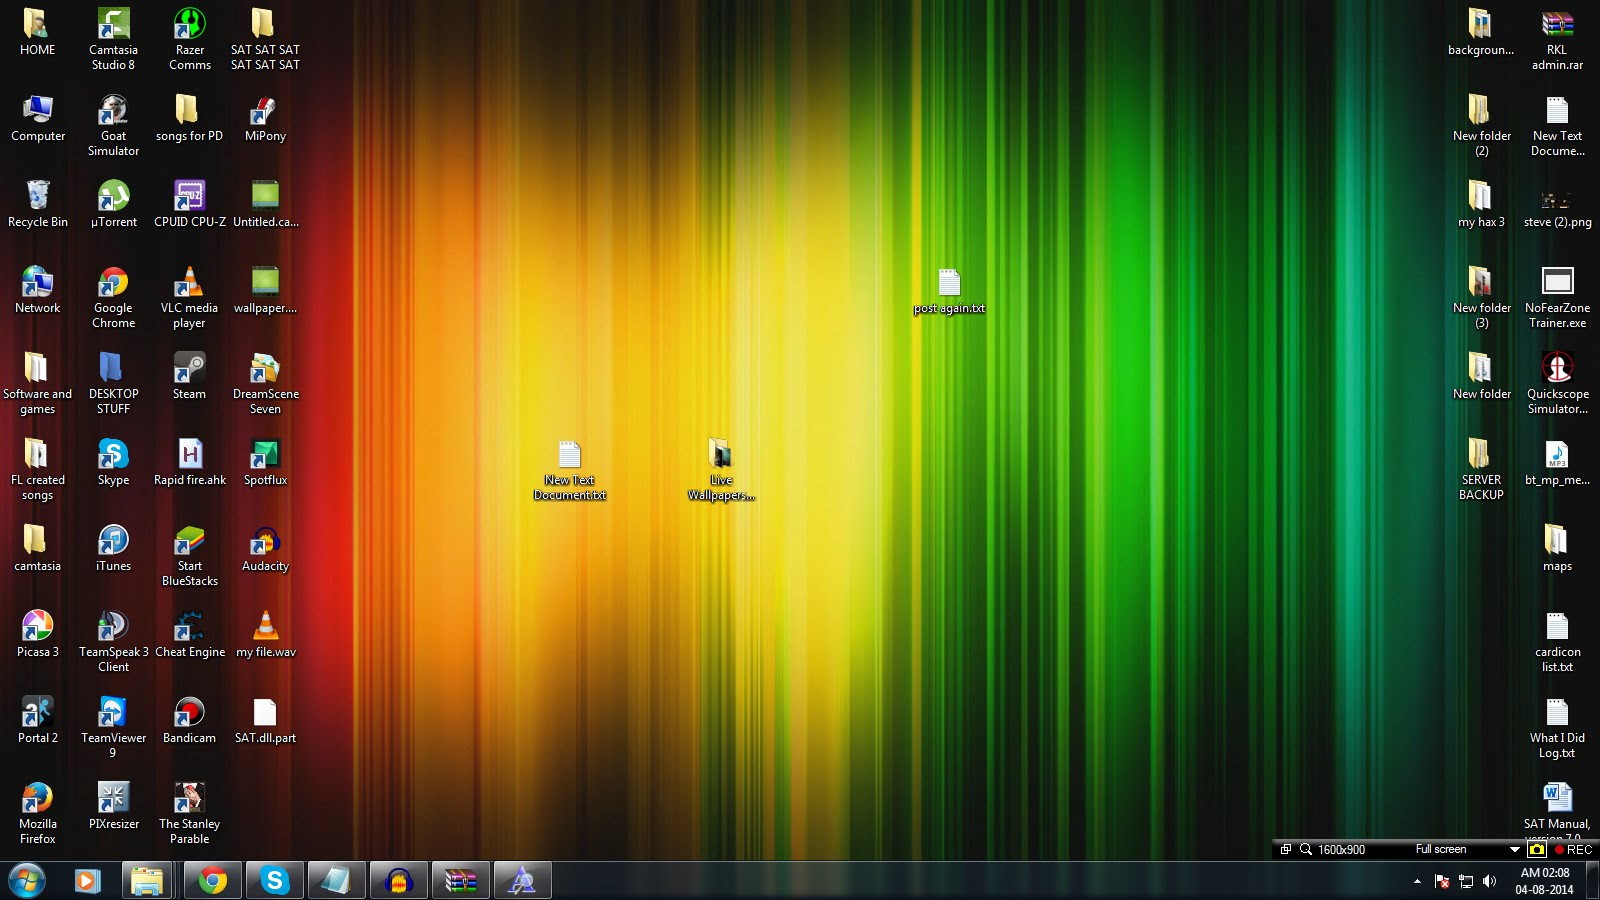 Moving Wallpapers For Windows 7